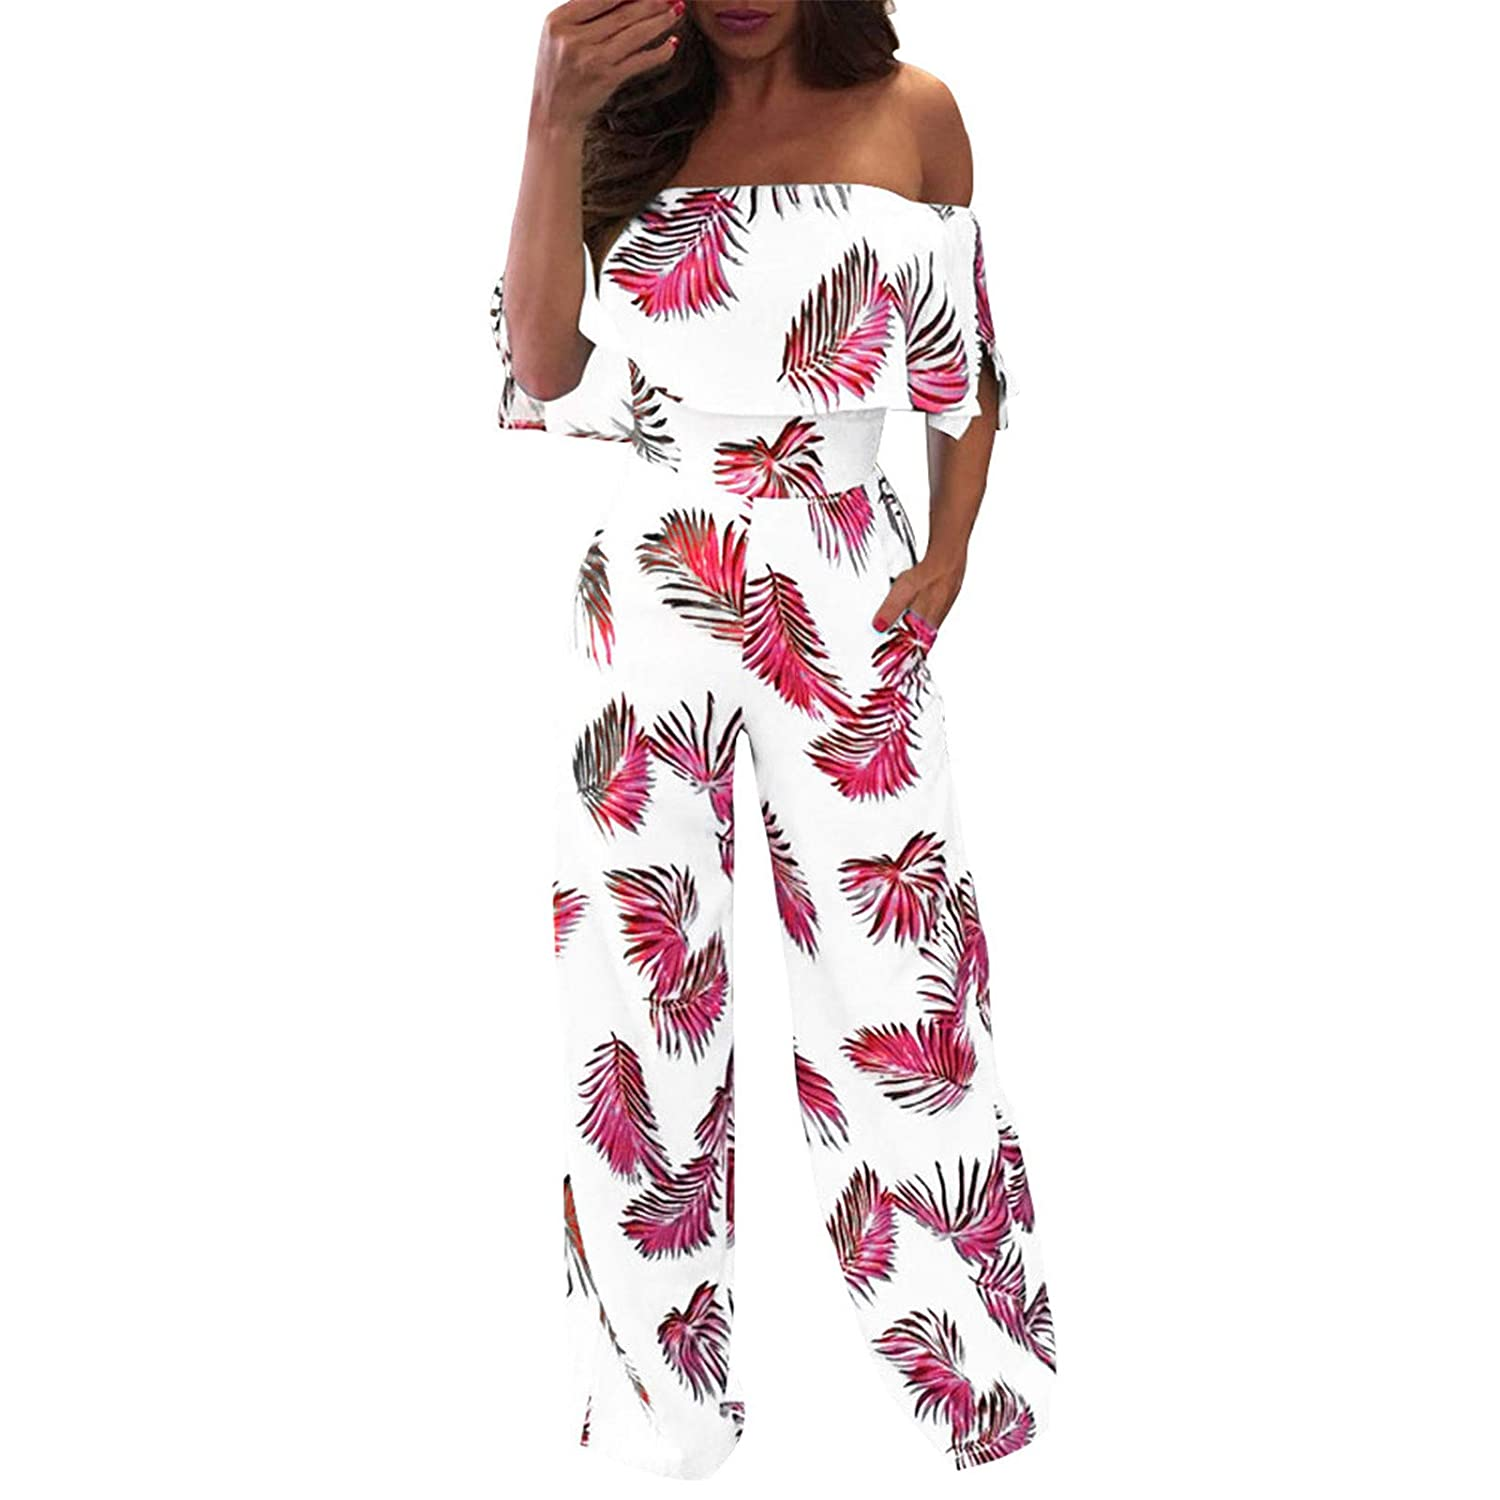 Thenxin Womens Off Shoulder Jumpsuits Strapless Ruffle Leaf Print High Waist Long Pants Rompers